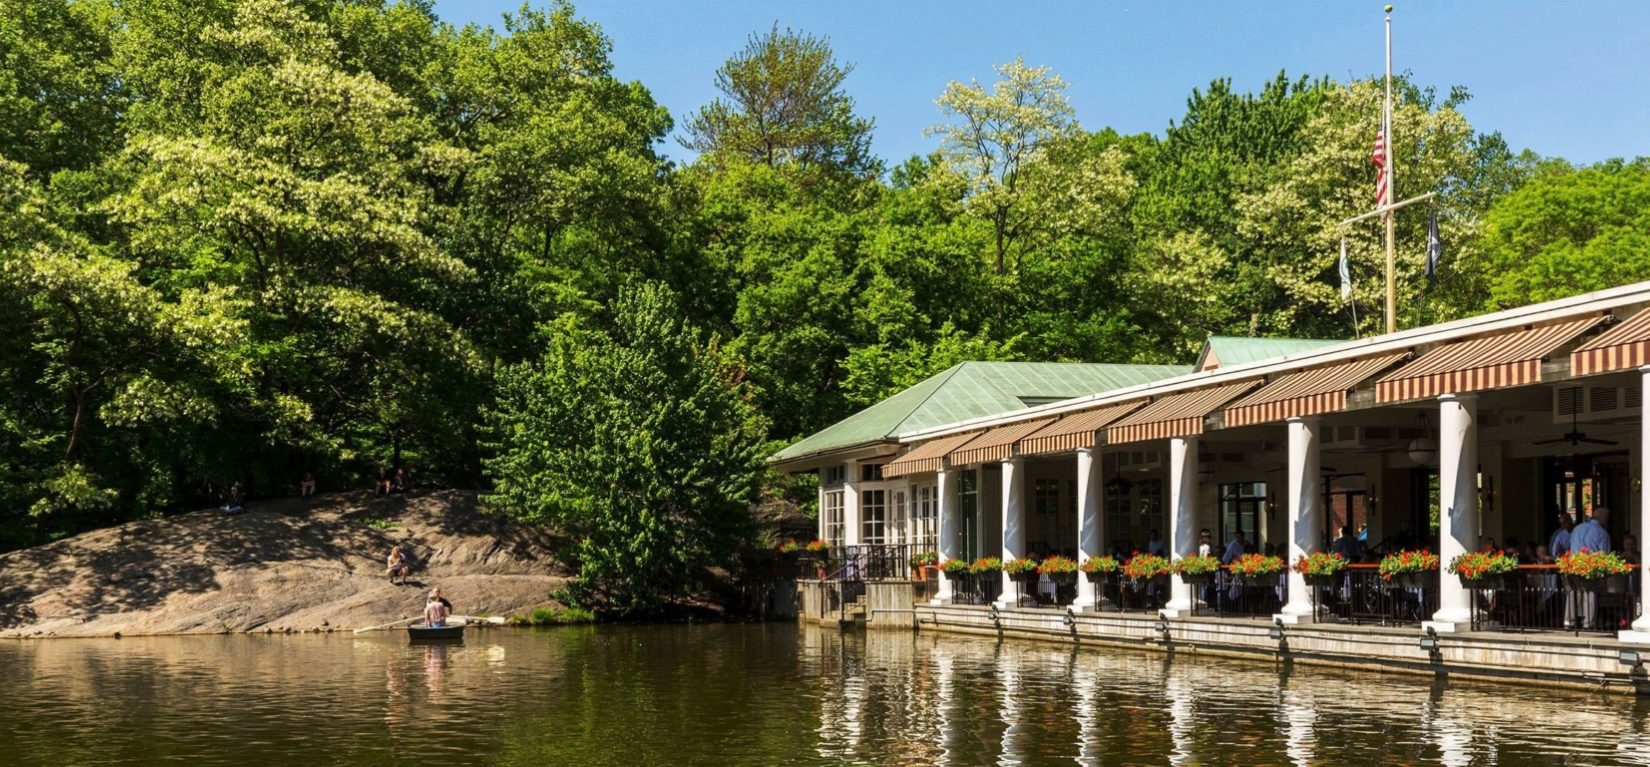 The boathouse is seen reflected in the waters of the Lake.